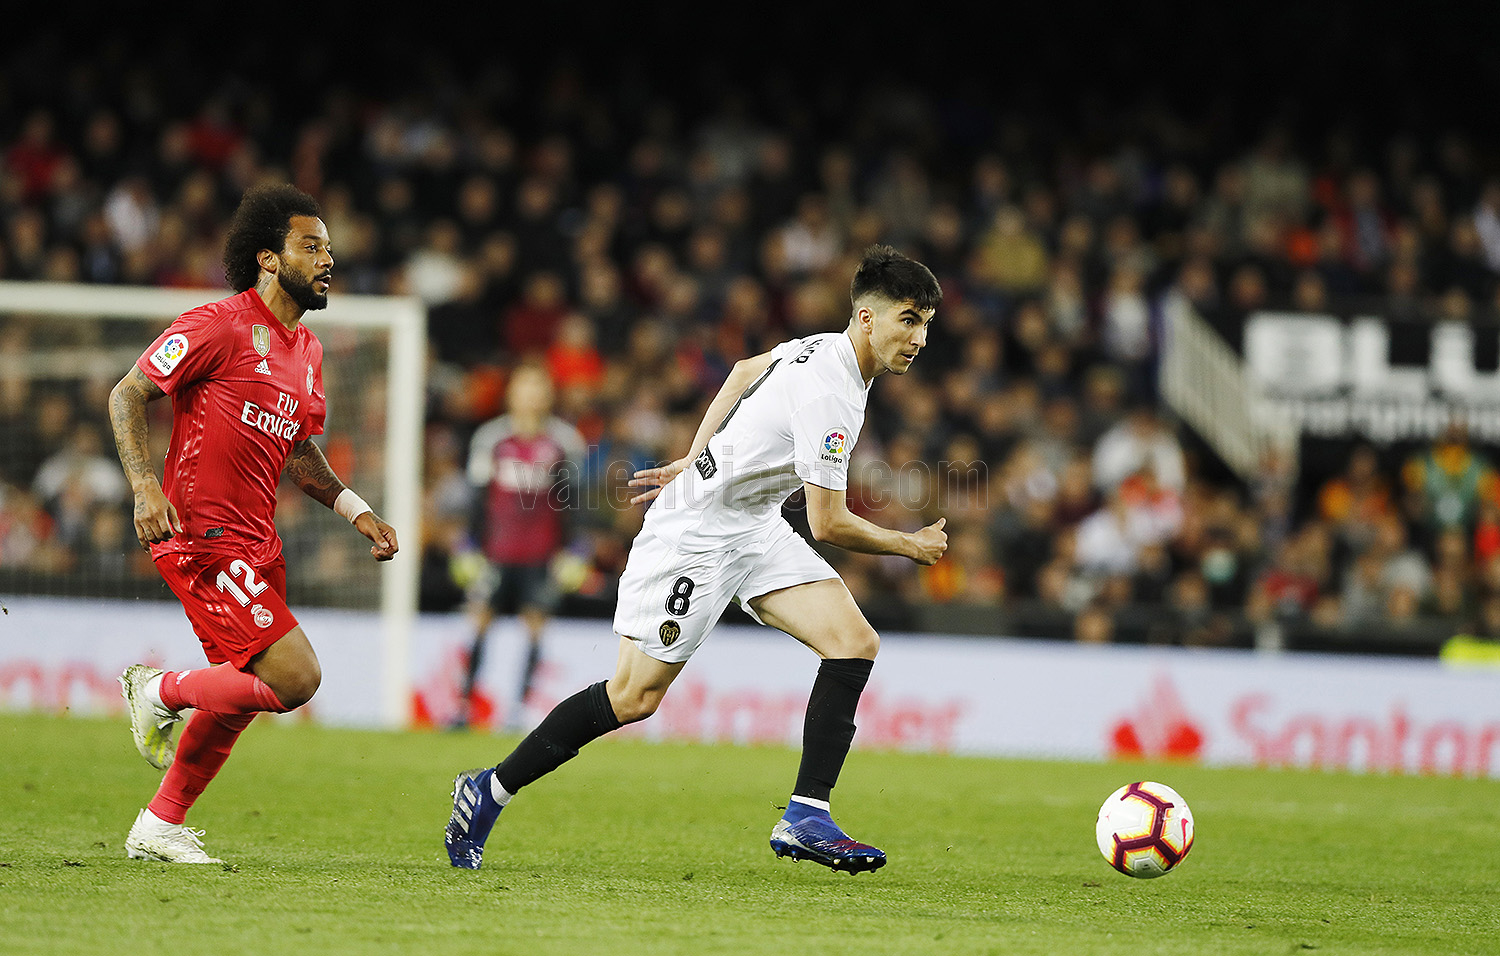 03.04.2019: Valencia CF 2 - 1 Real Madrid